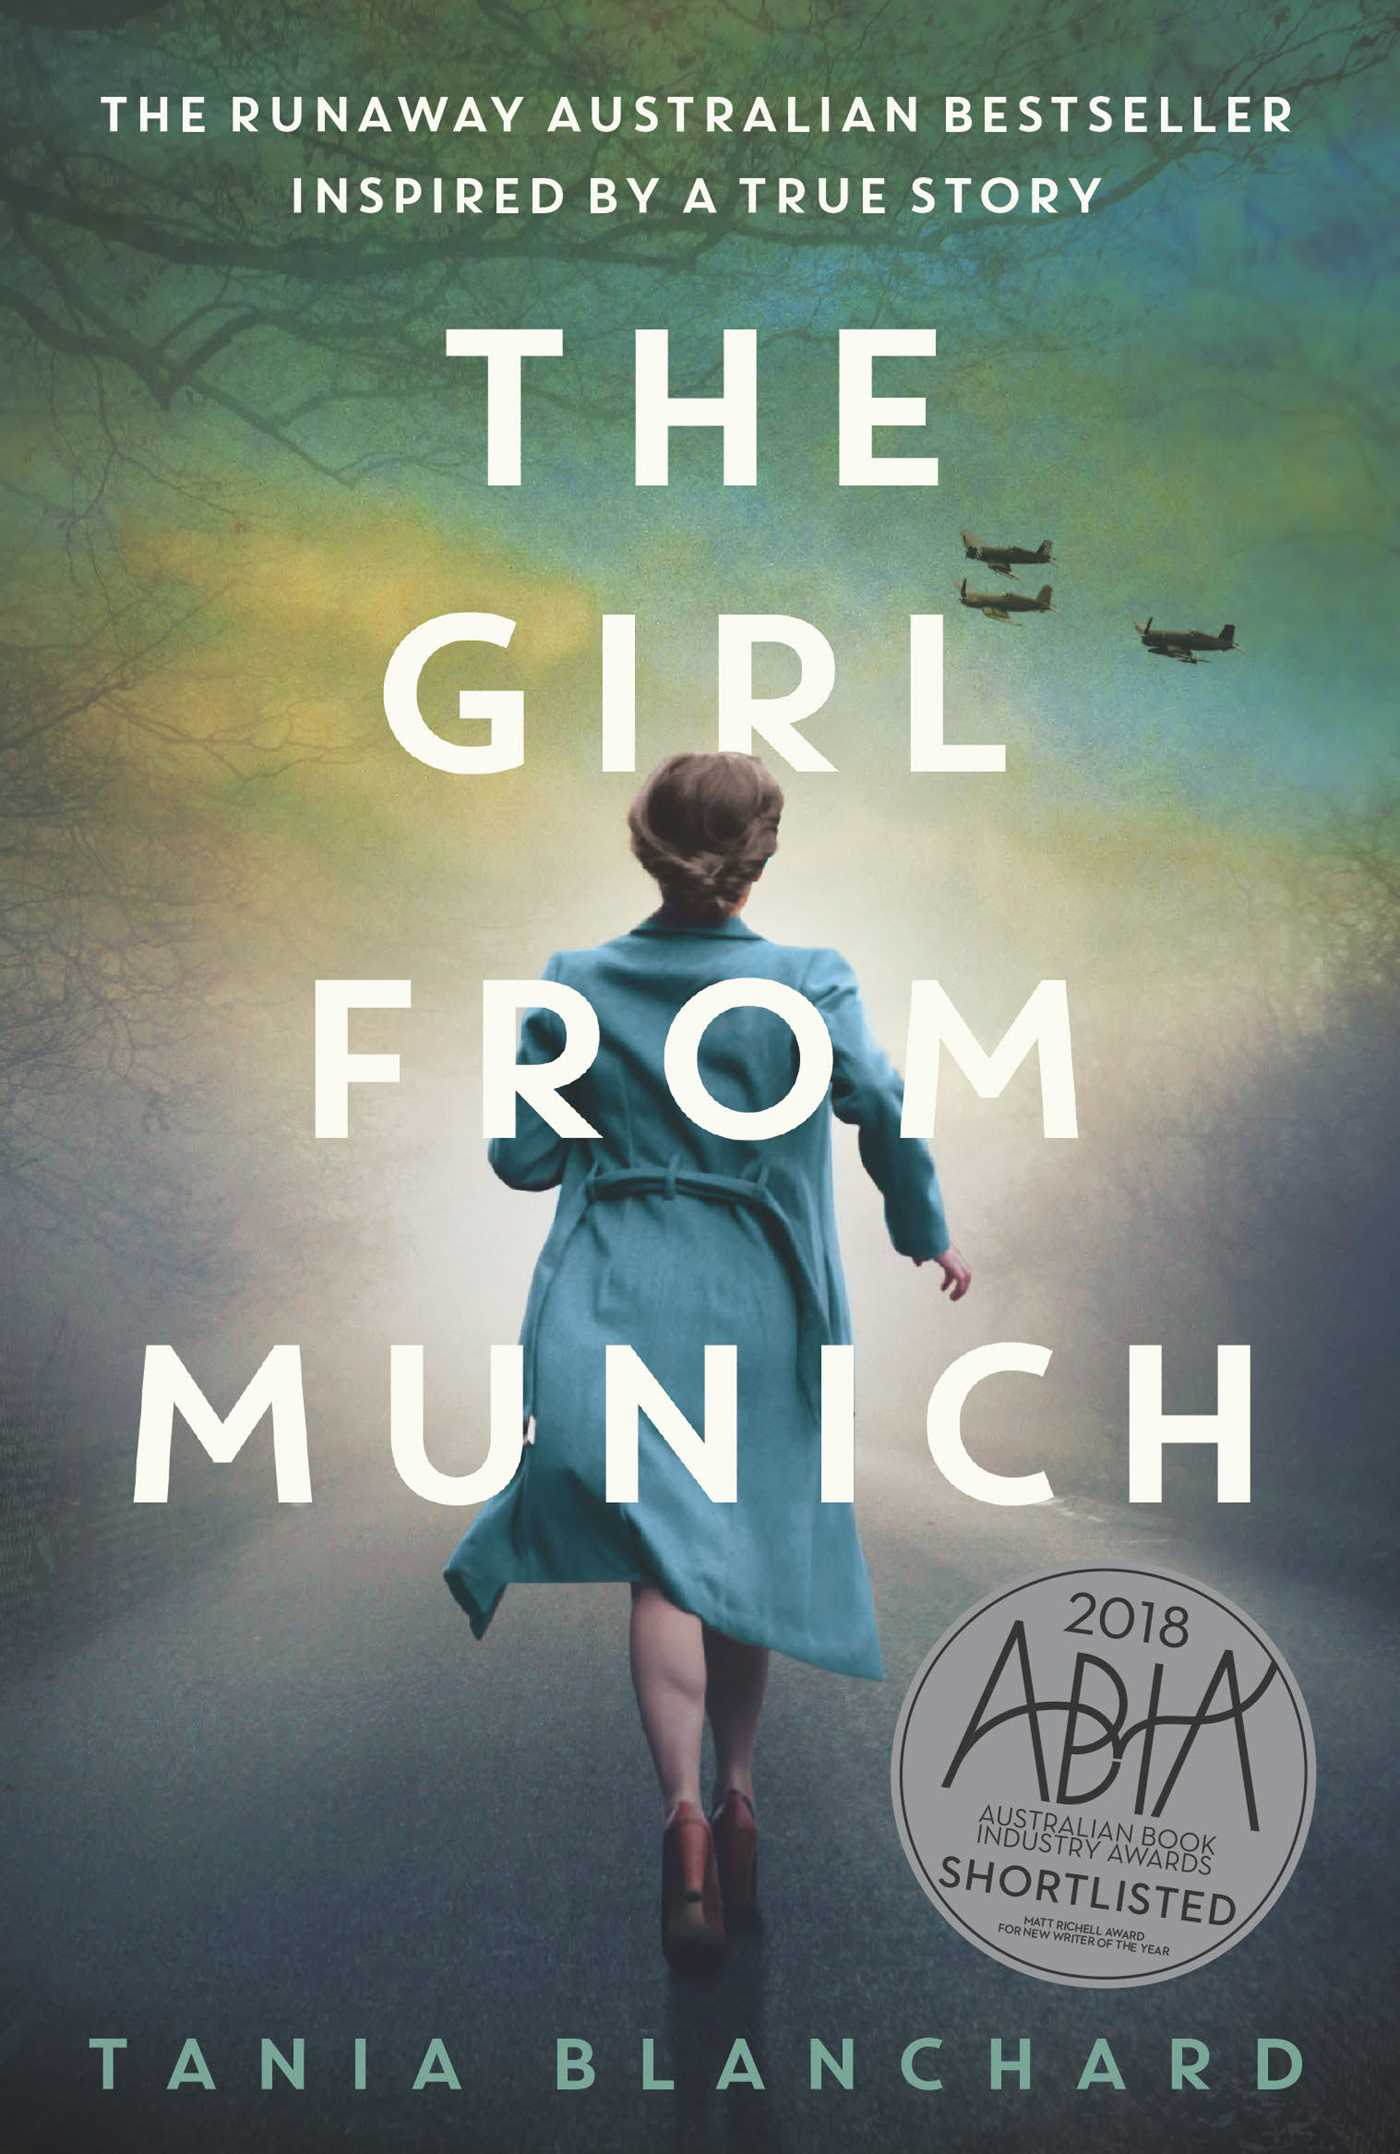 The girl from munich 9781925791204 hr